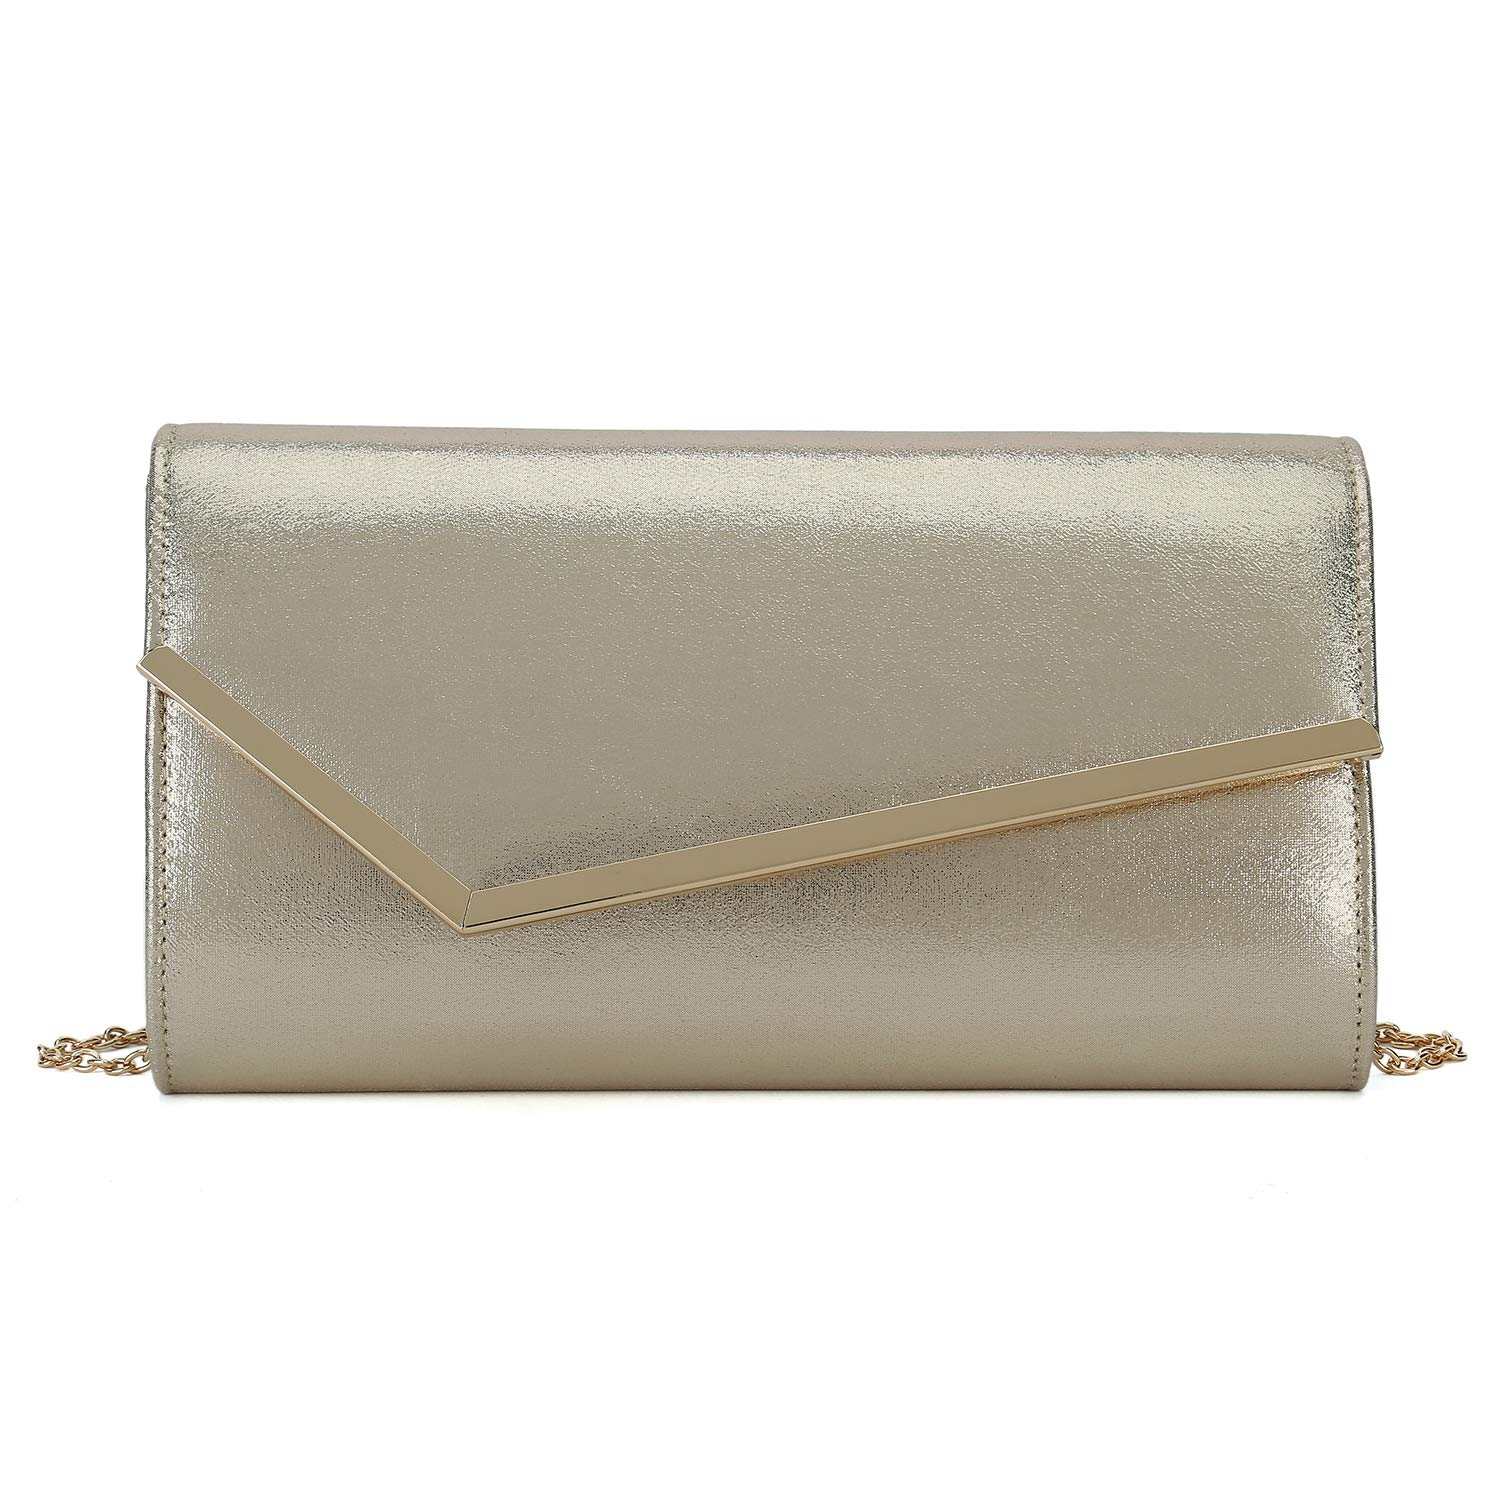 Amazon.com: Charming Tailor Shimmering metálico embrague ...